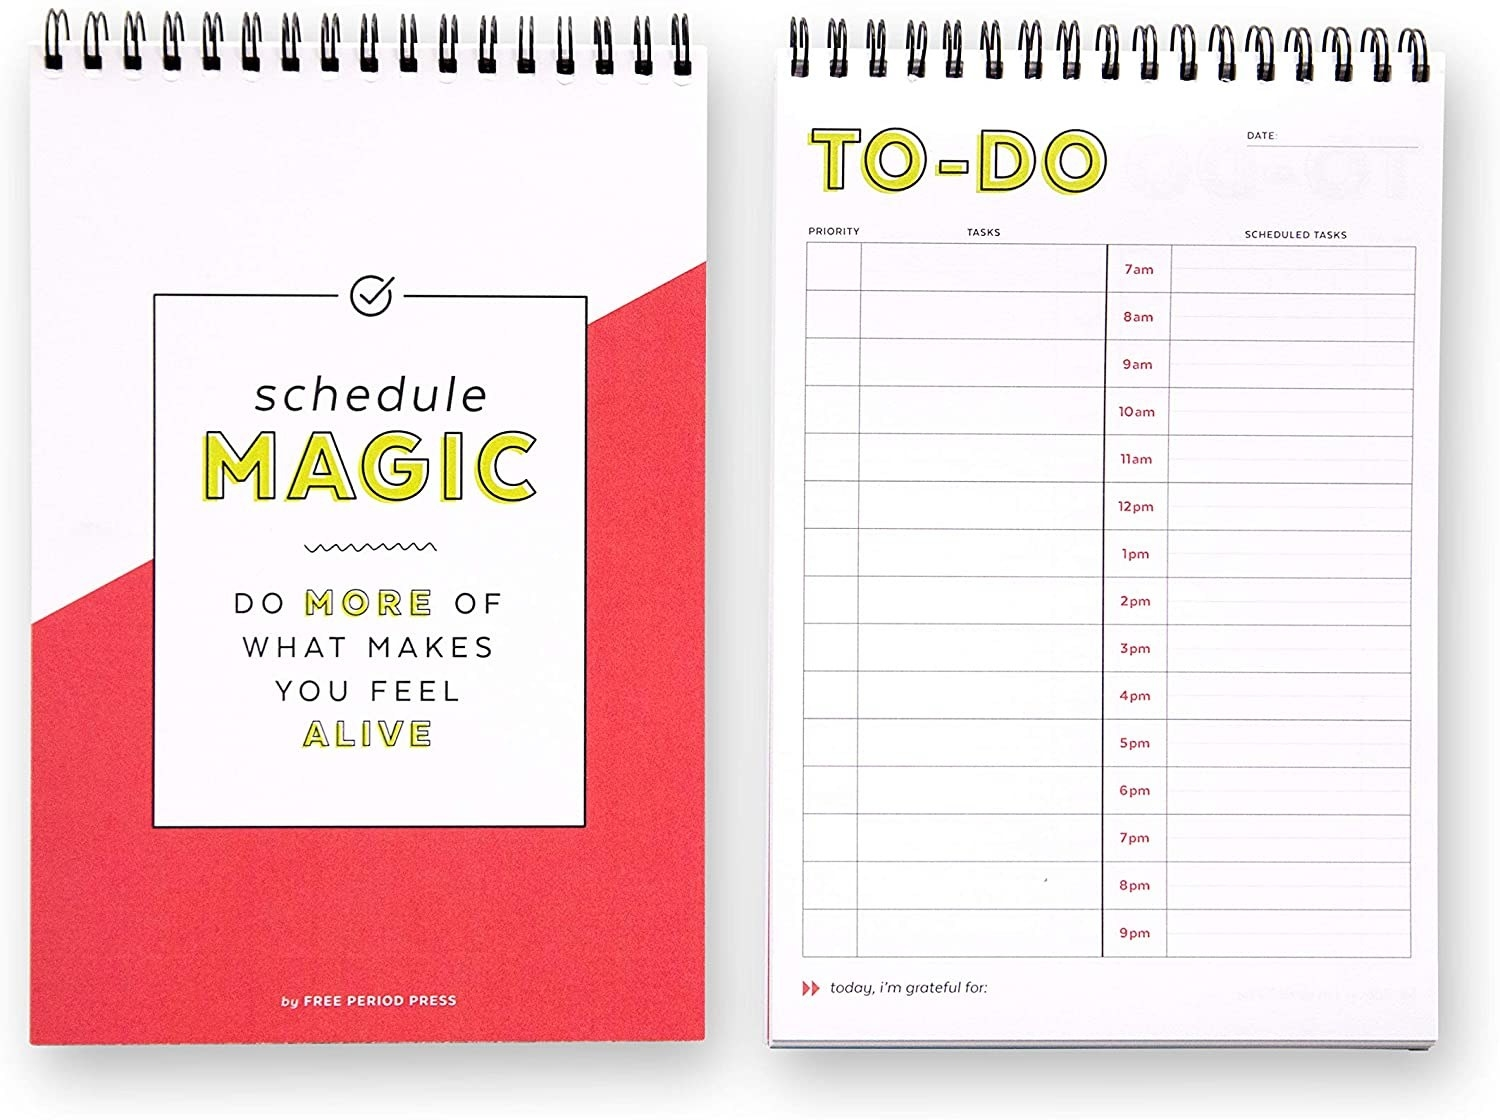 """The vertical spiral-bound notebooks with a cute cover that reads """"Schedule Magic Do more of what makes you feel alive"""" and the to-do pages with the priority, tasks, and scheduled tasks columns with rows labeled 7 am to 9 pm"""